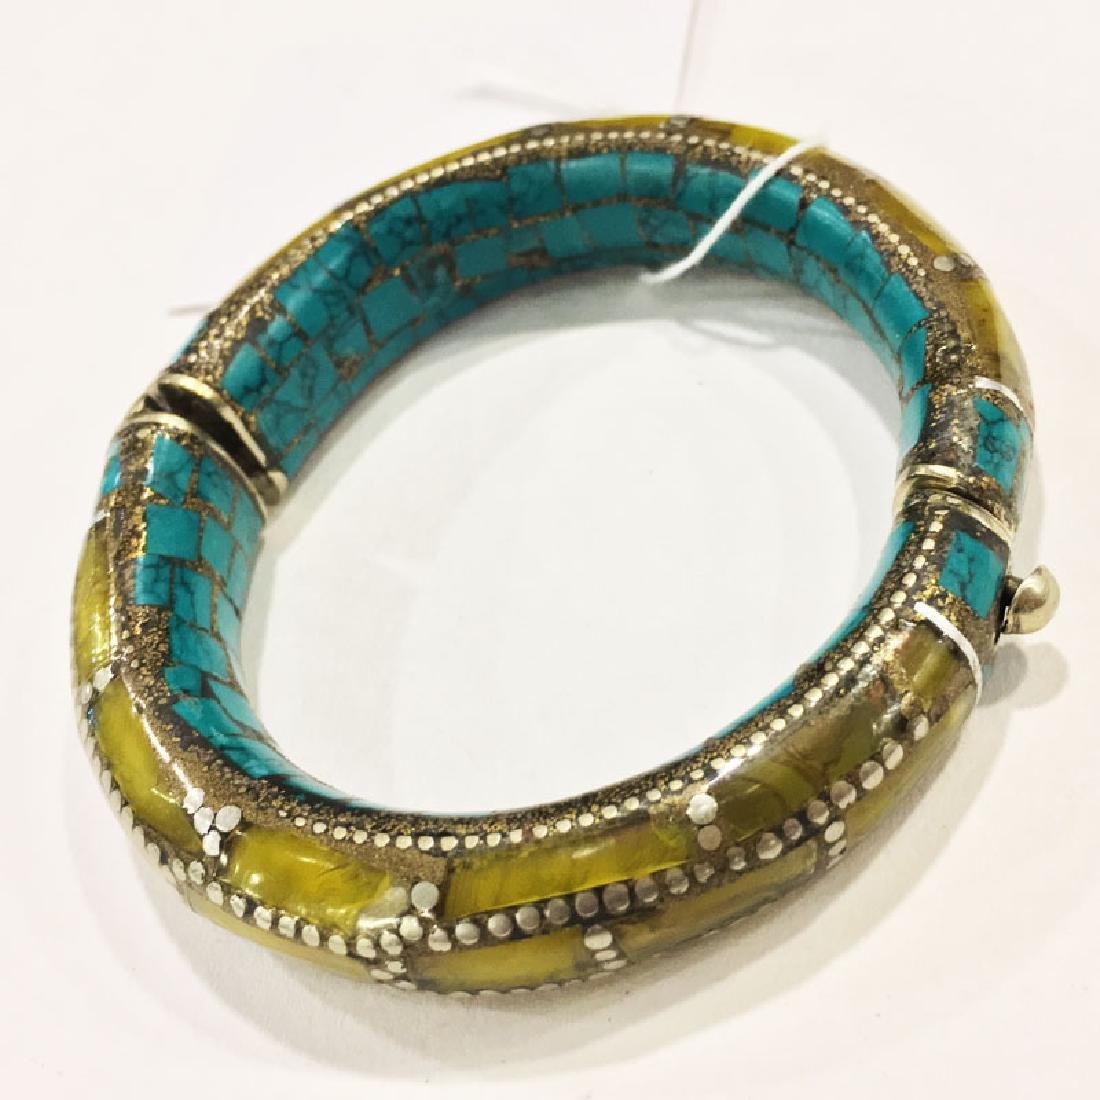 Sterling Silver Turquoise & Amber Bangle - 2